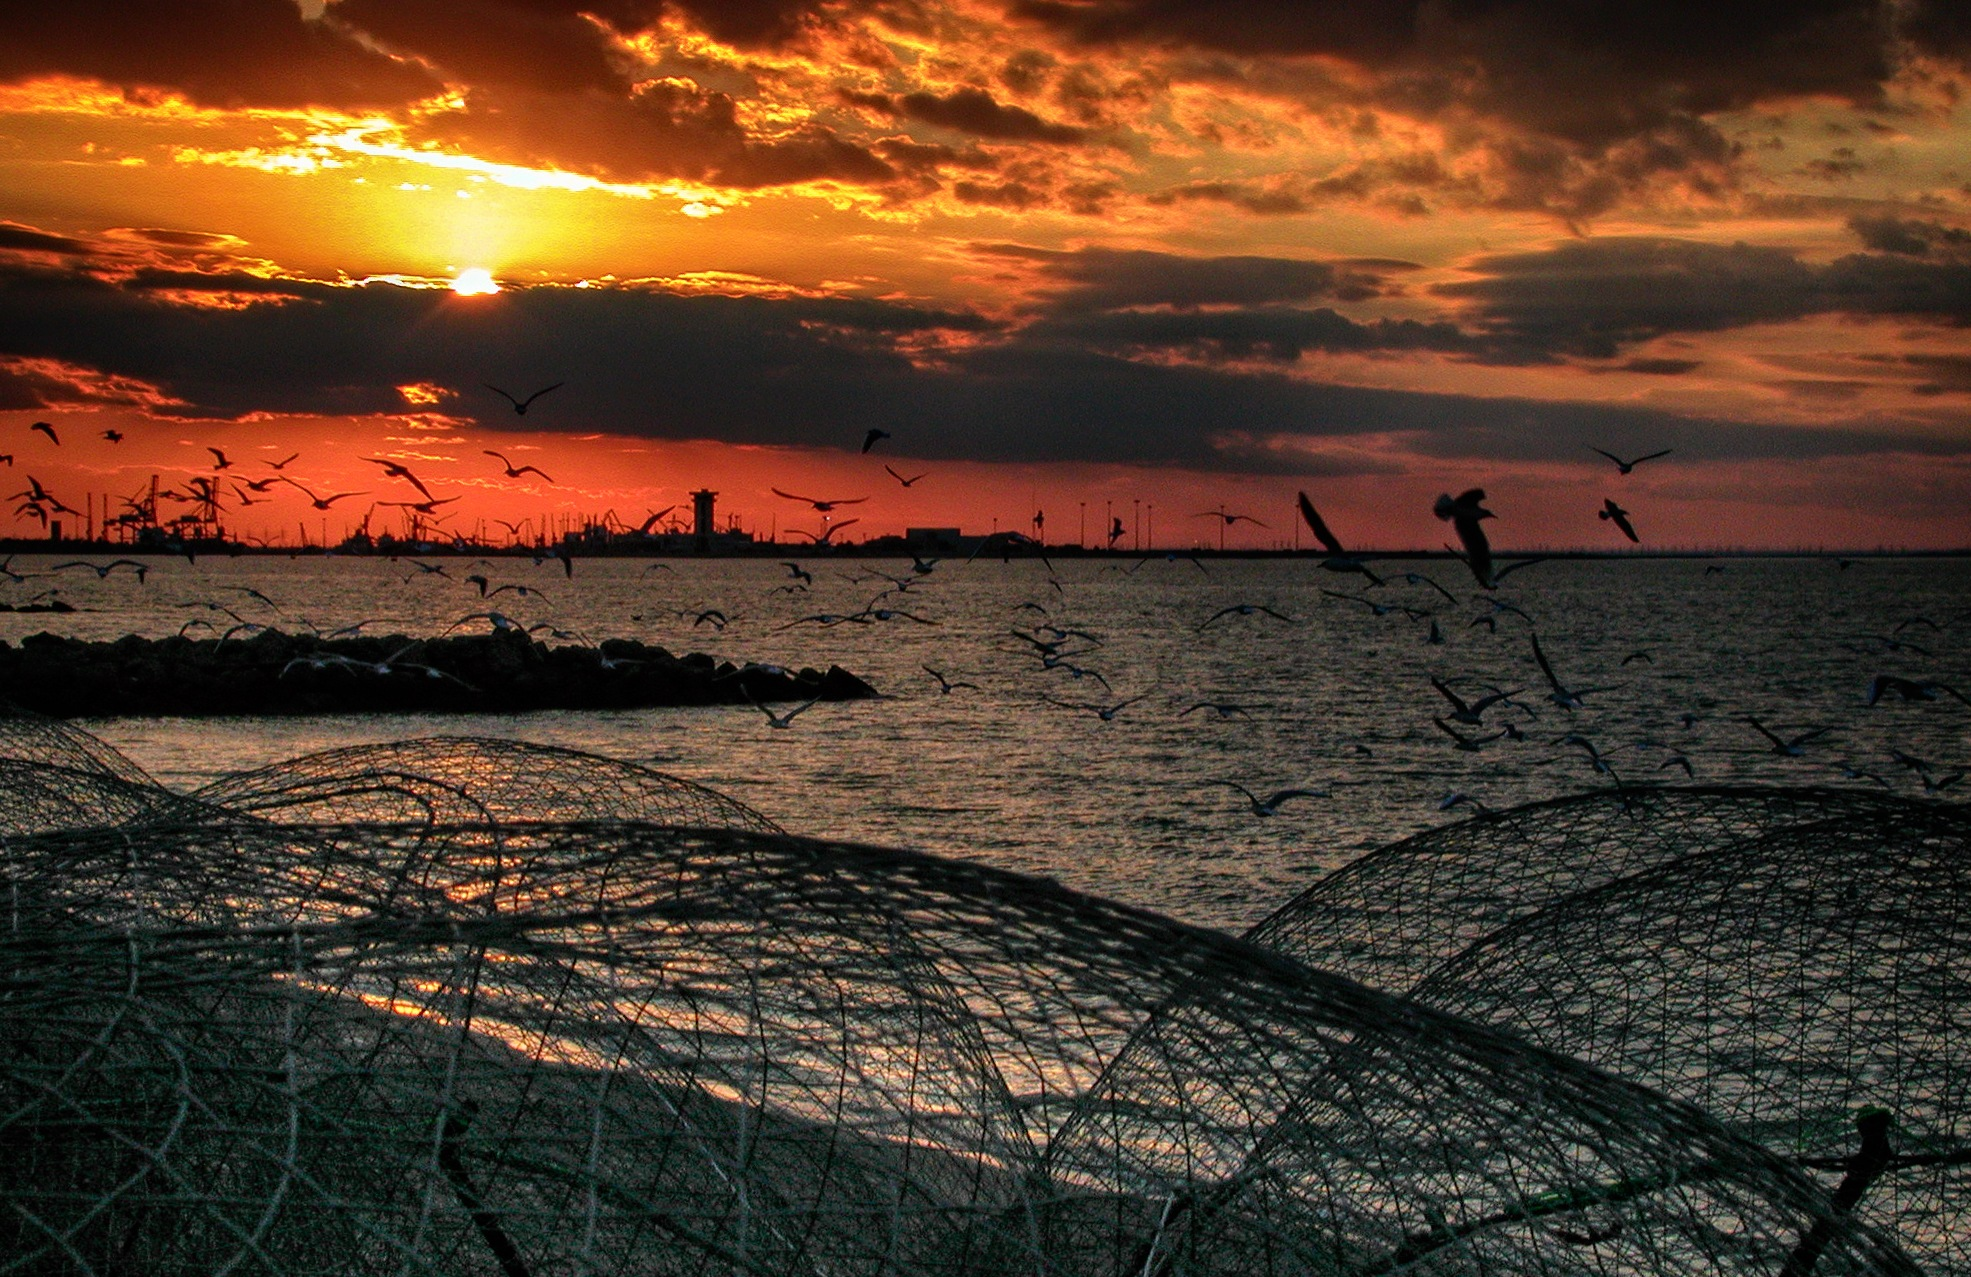 Seagulls at sunset by Hisham Badran